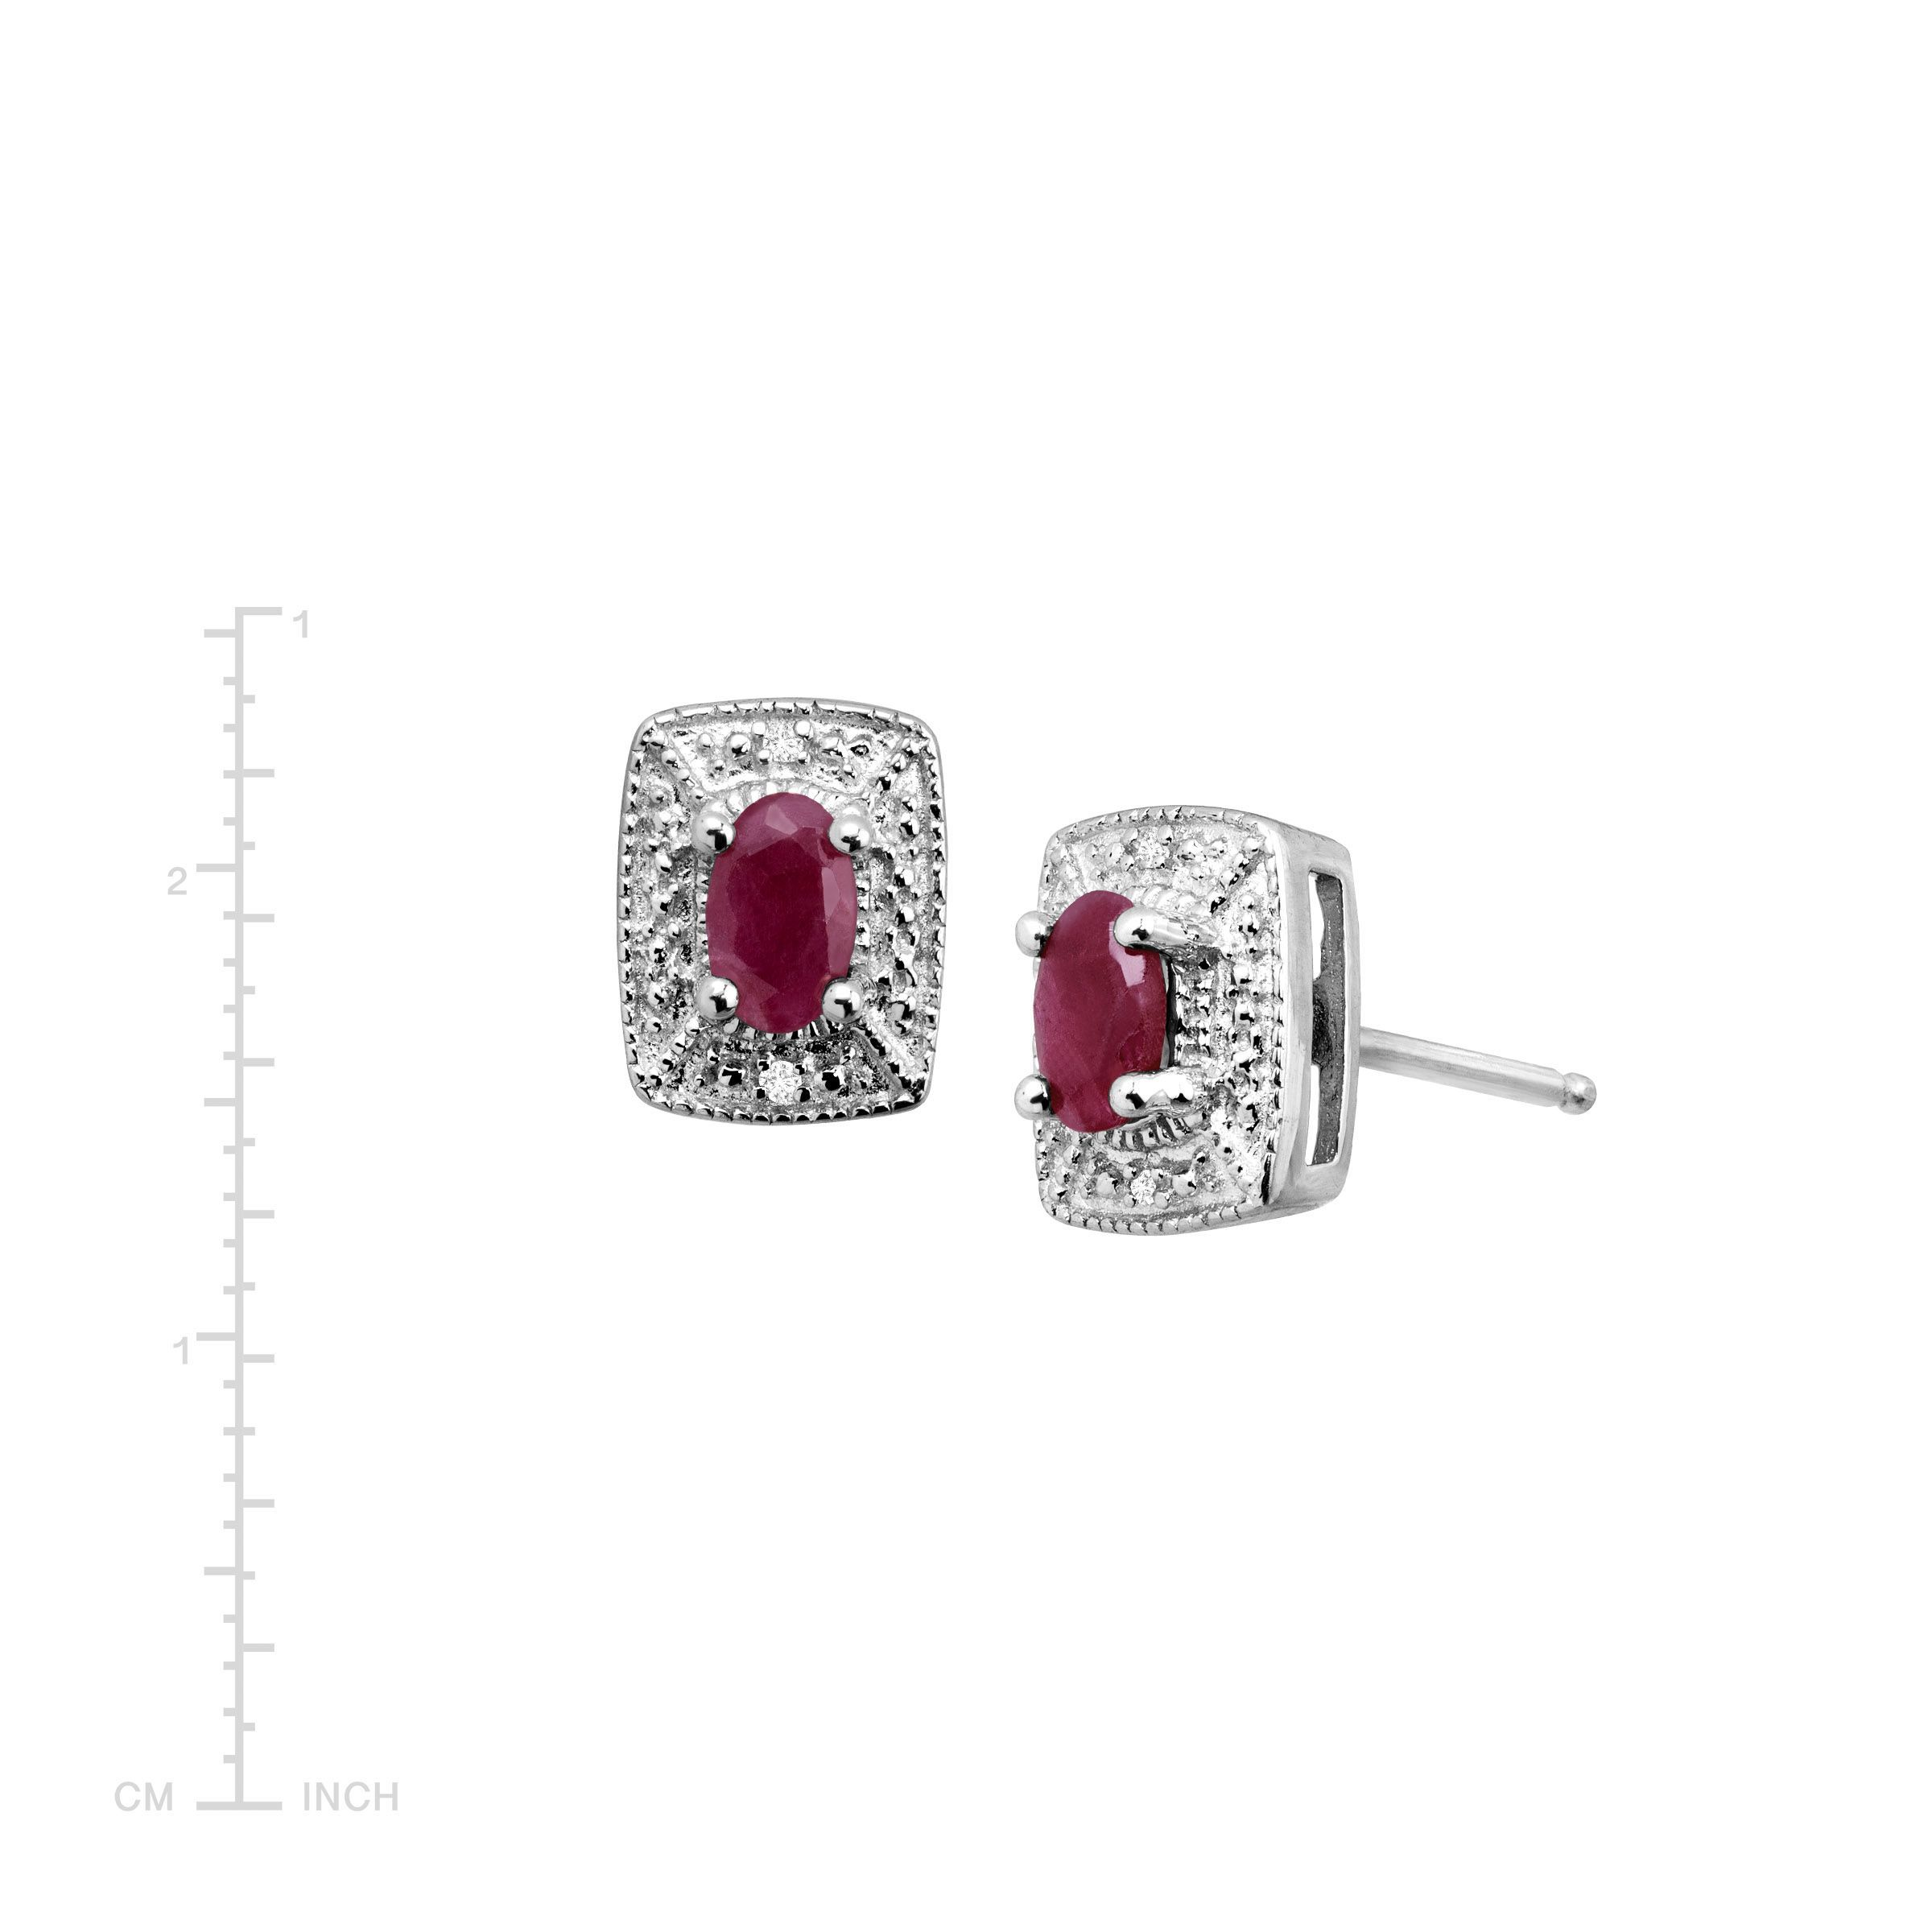 3 4 Ct Natural Ruby Stud Earrings With Diamonds In Sterling Silver